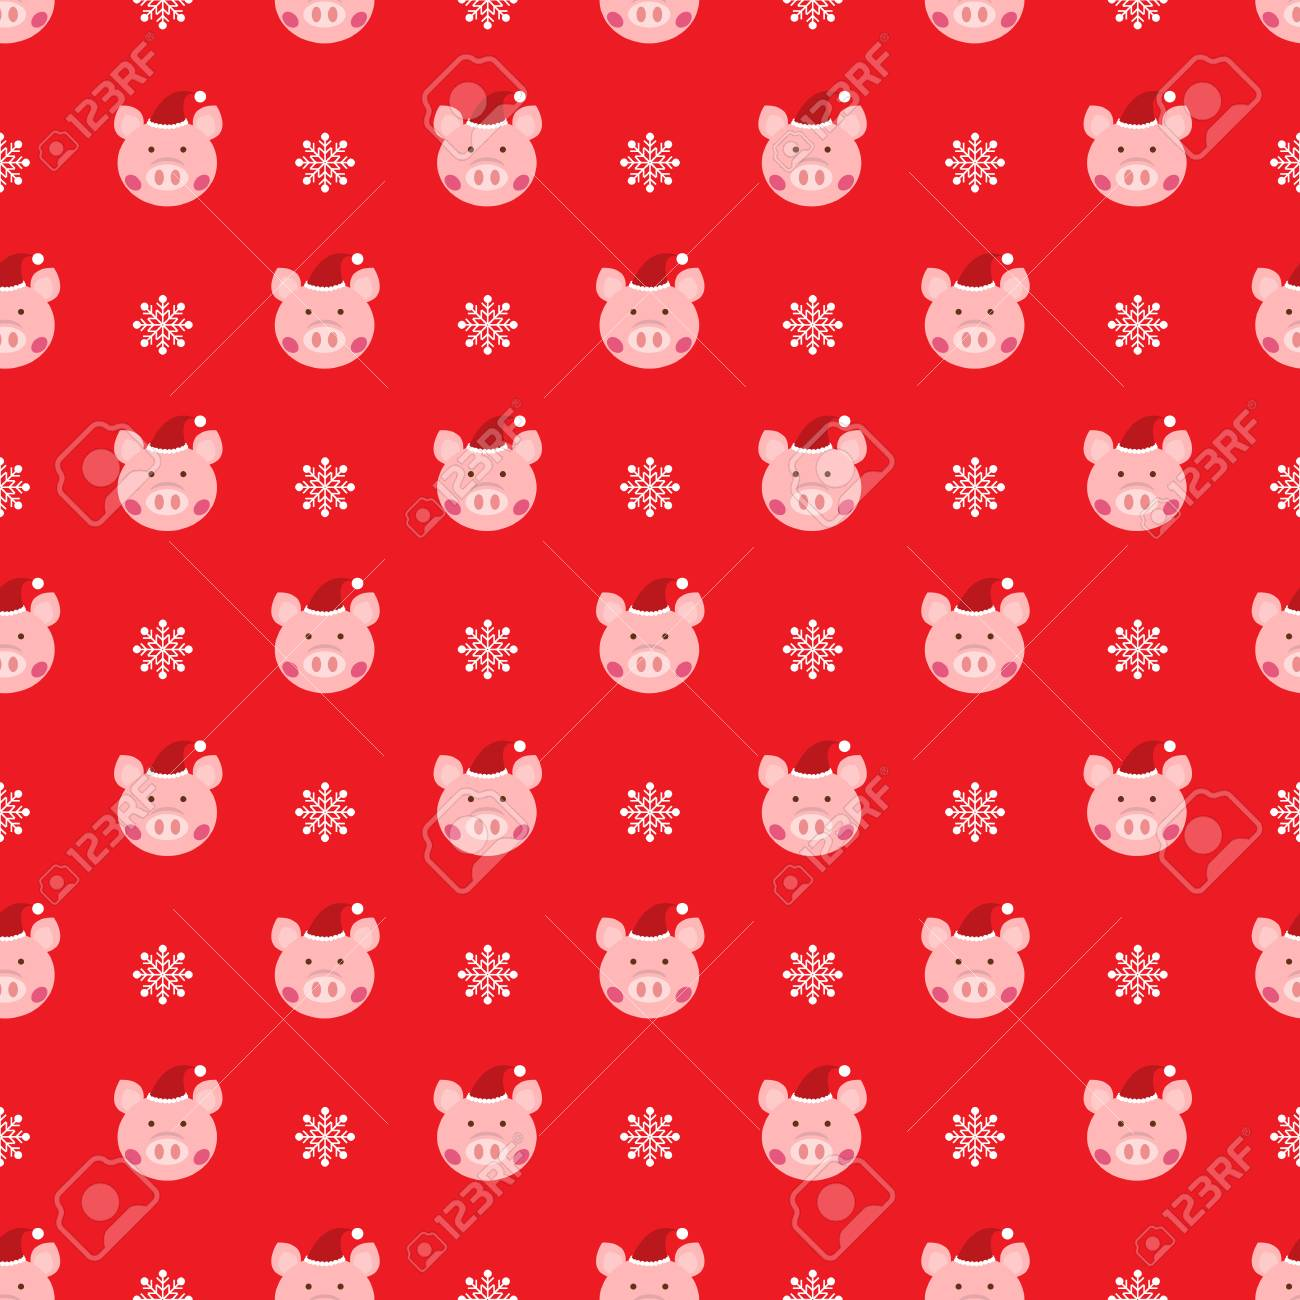 christmas wallpaper pattern with cute pig royalty free cliparts vectors and stock illustration image 113356445 christmas wallpaper pattern with cute pig